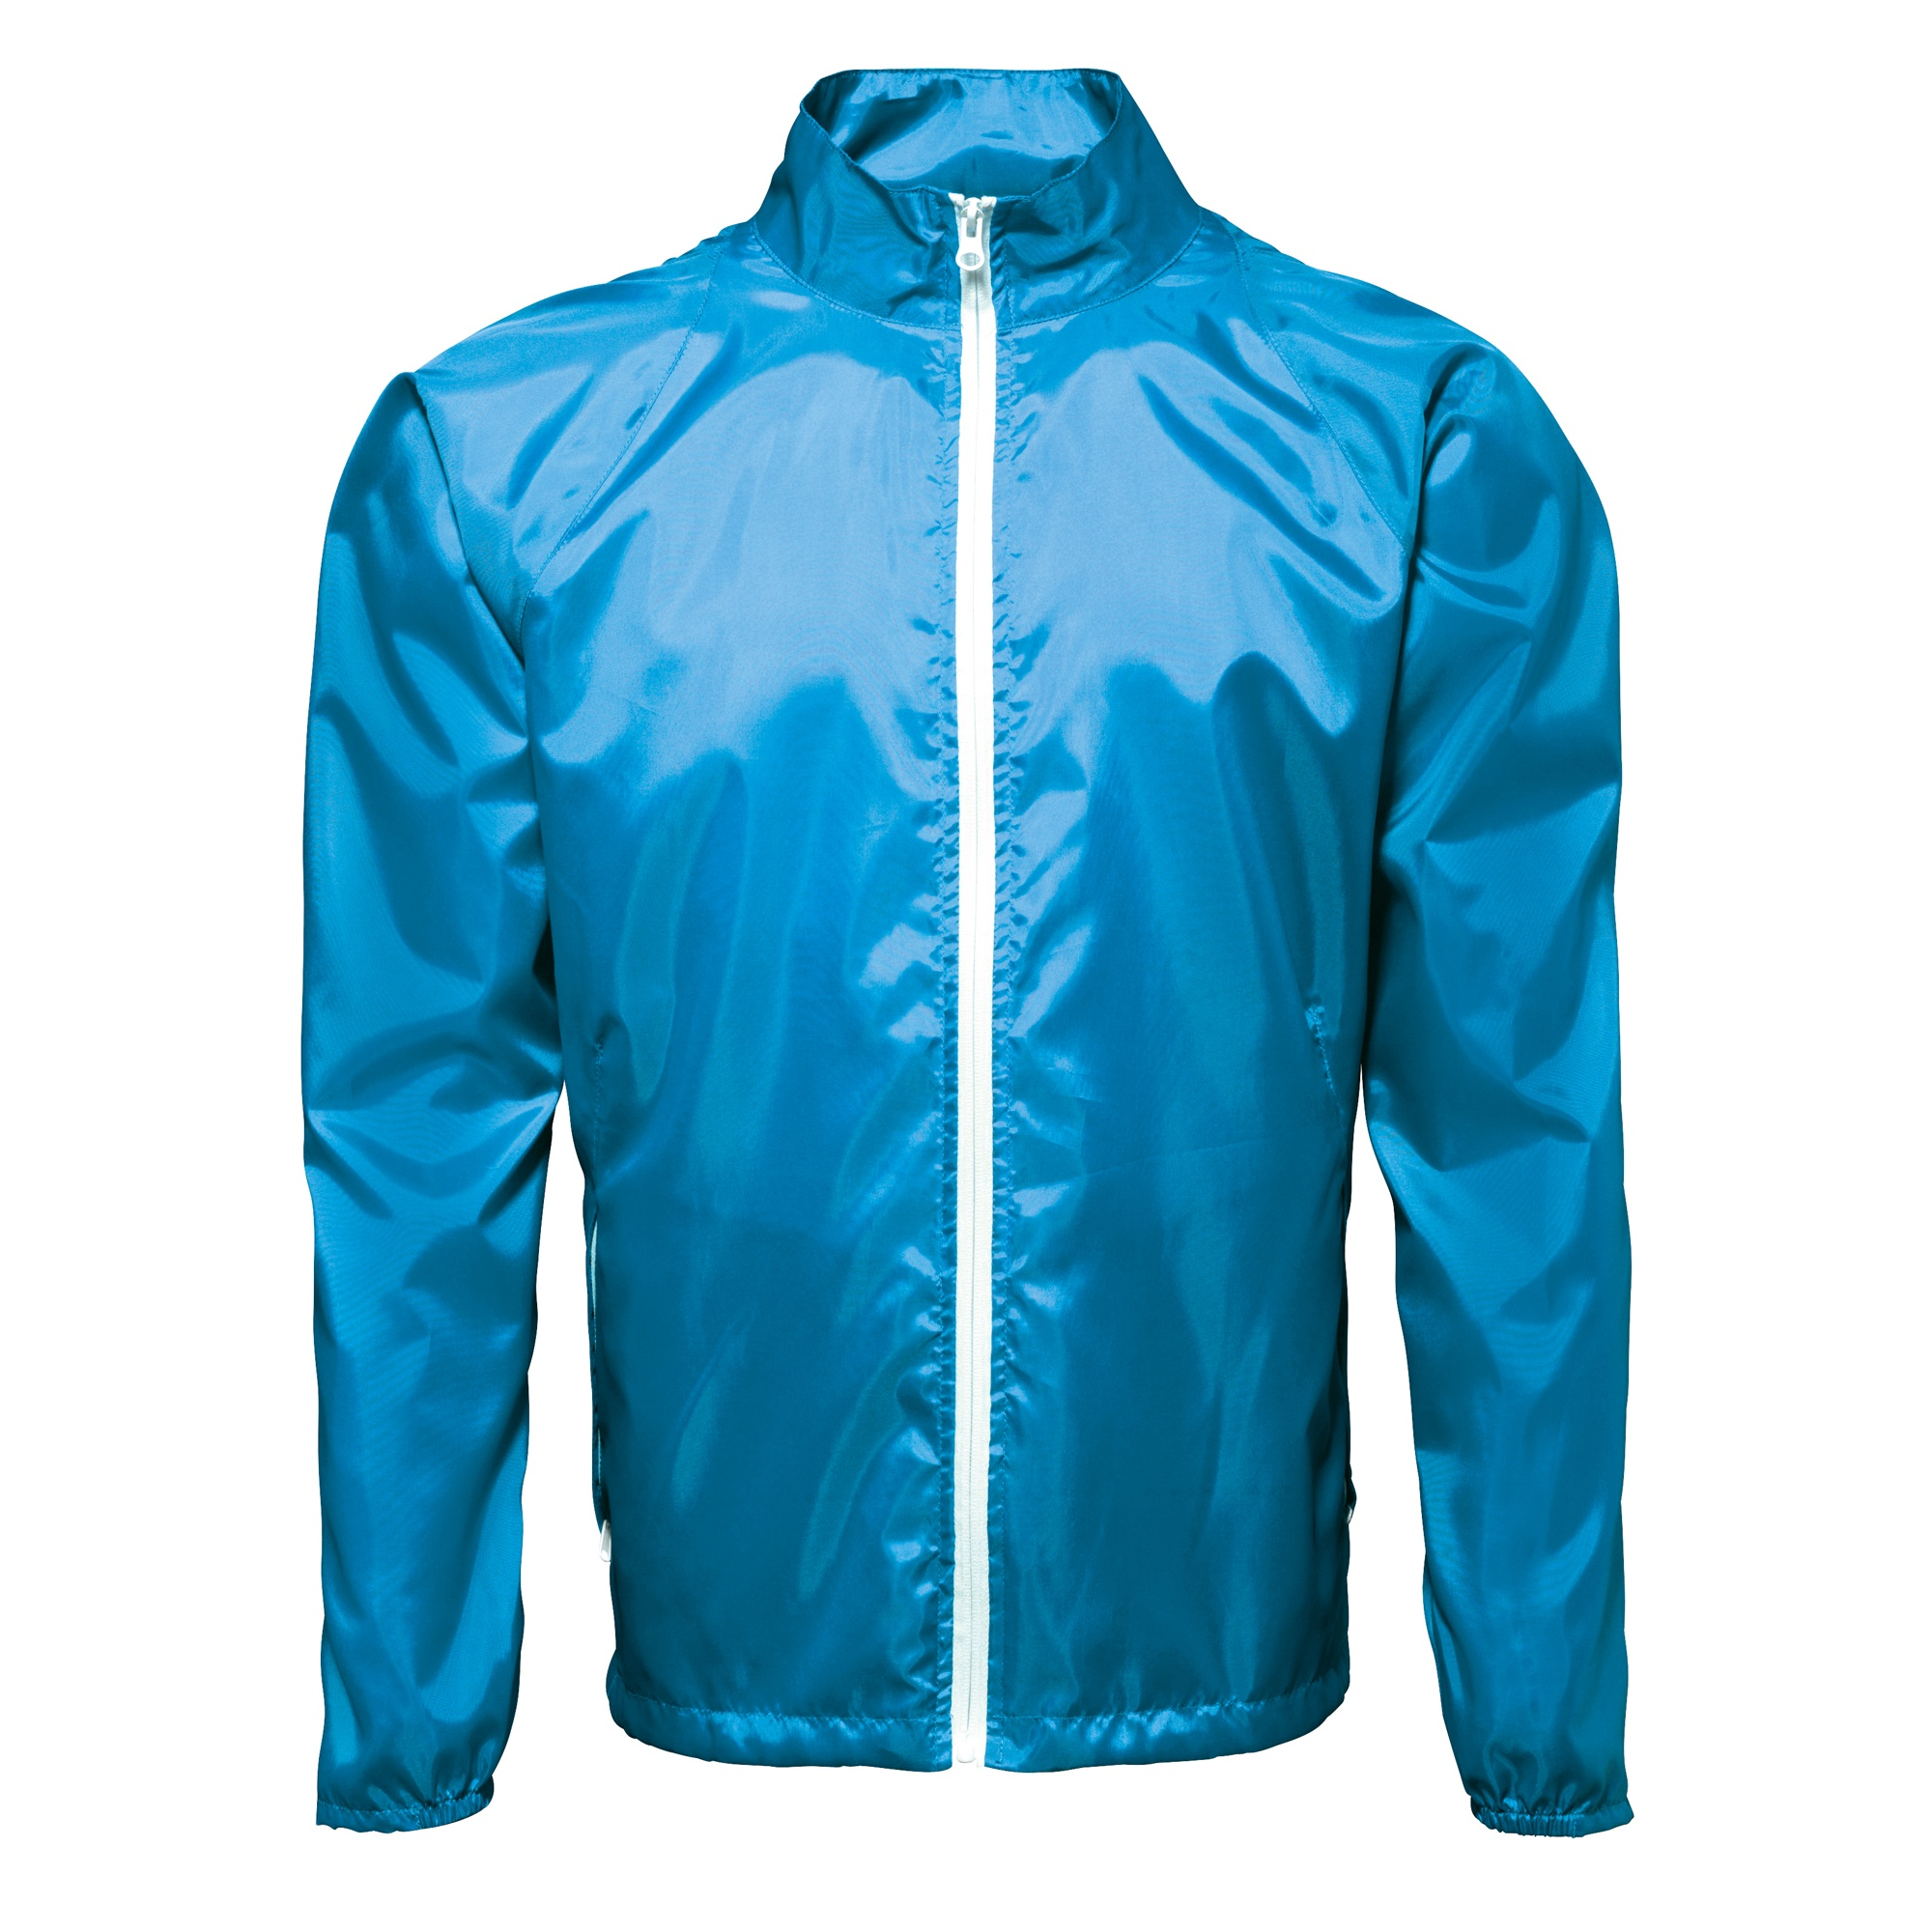 View all Mens Outdoor Clothing Stay dry outdoors with our huge range of men's waterproof jackets. Choose from some of the best waterproof jackets around from top brands including Craghoppers, Helly Hansen and many more at amazingly low prices!